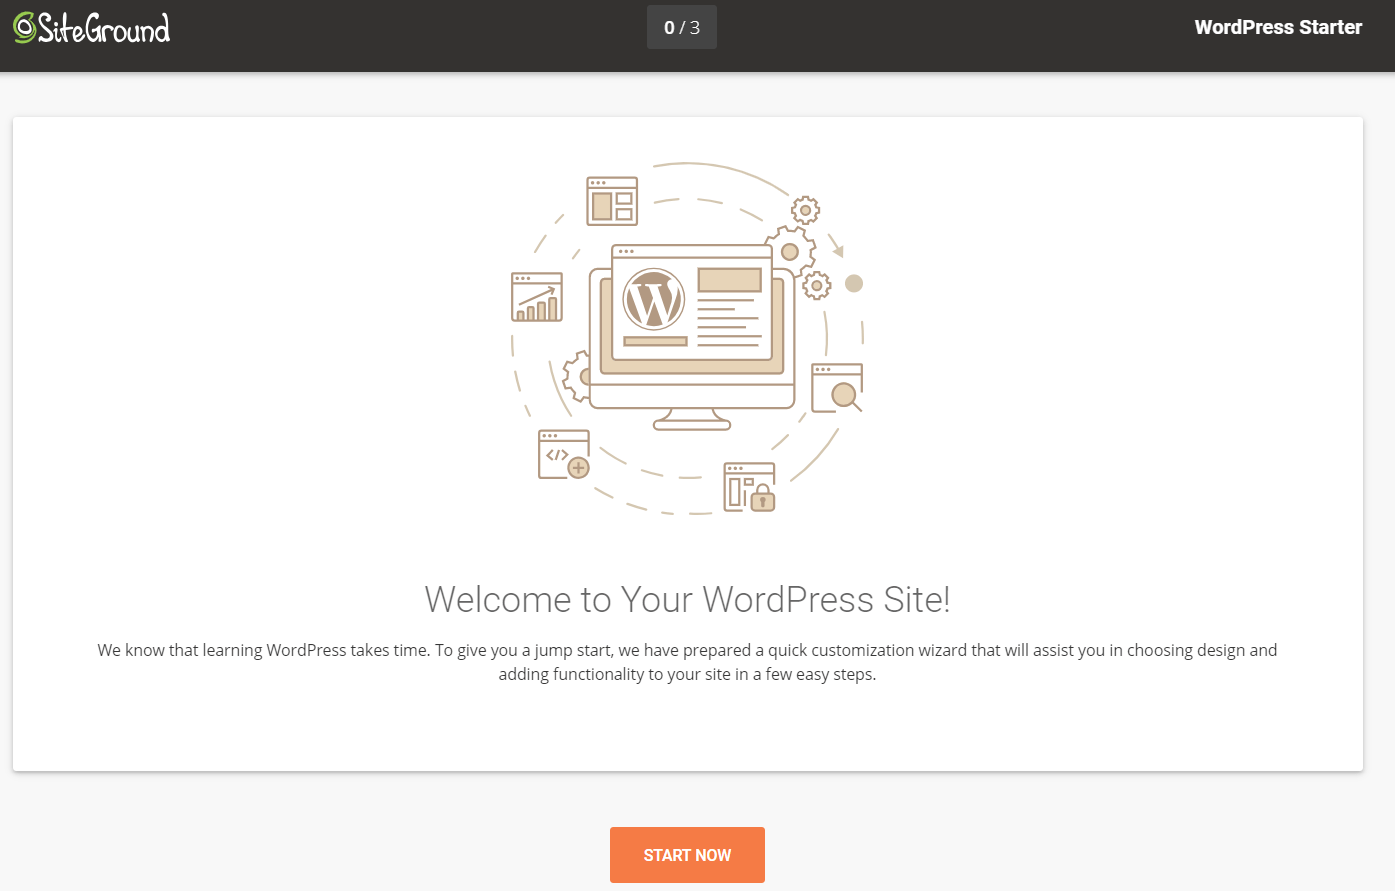 How to Connect a Domain and Install WordPress on SiteGround-image9